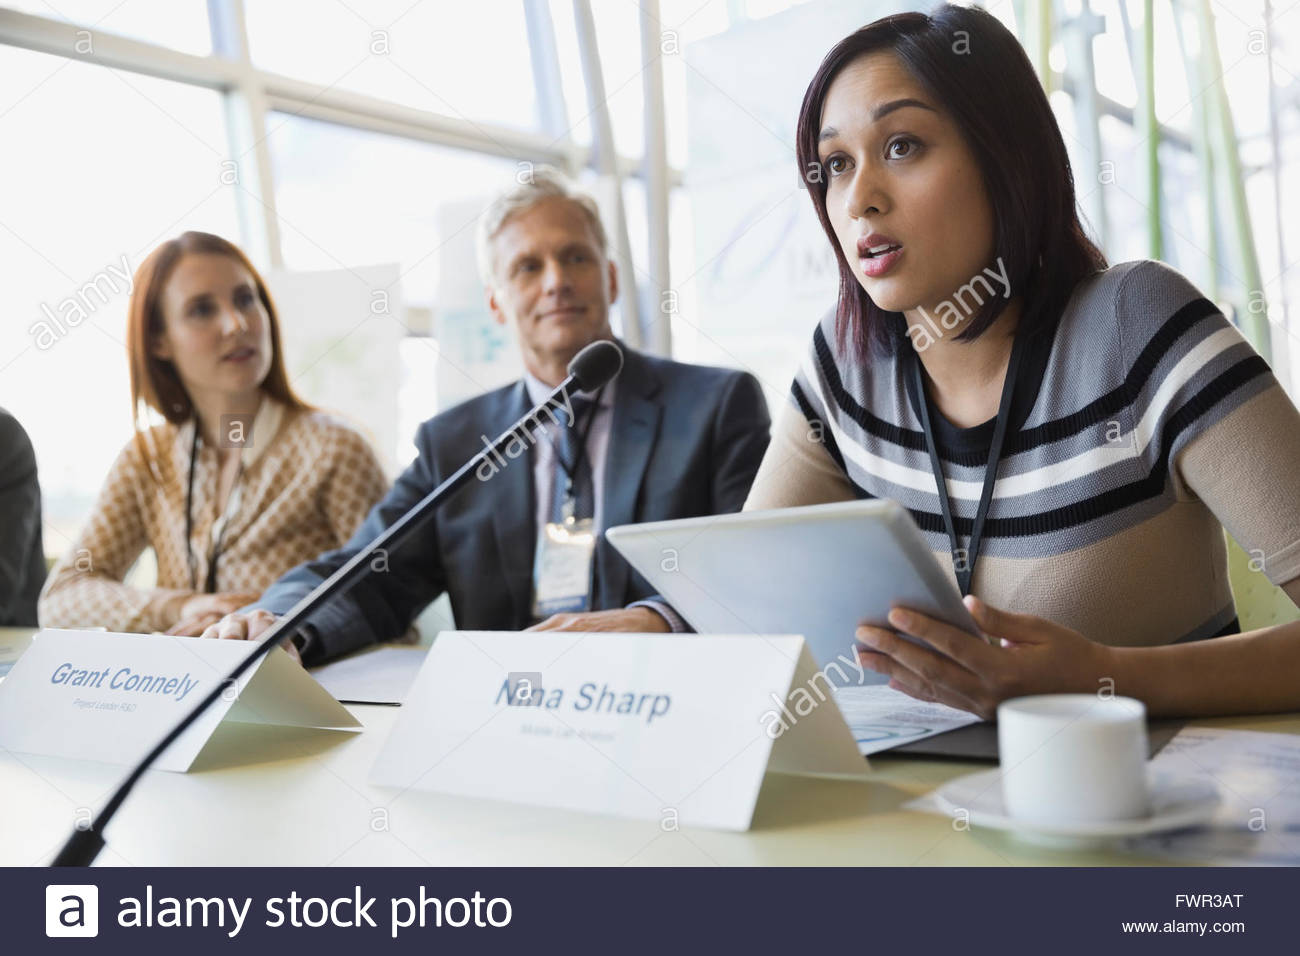 Businesswoman using digital tablet while leading conference talks - Stock Image